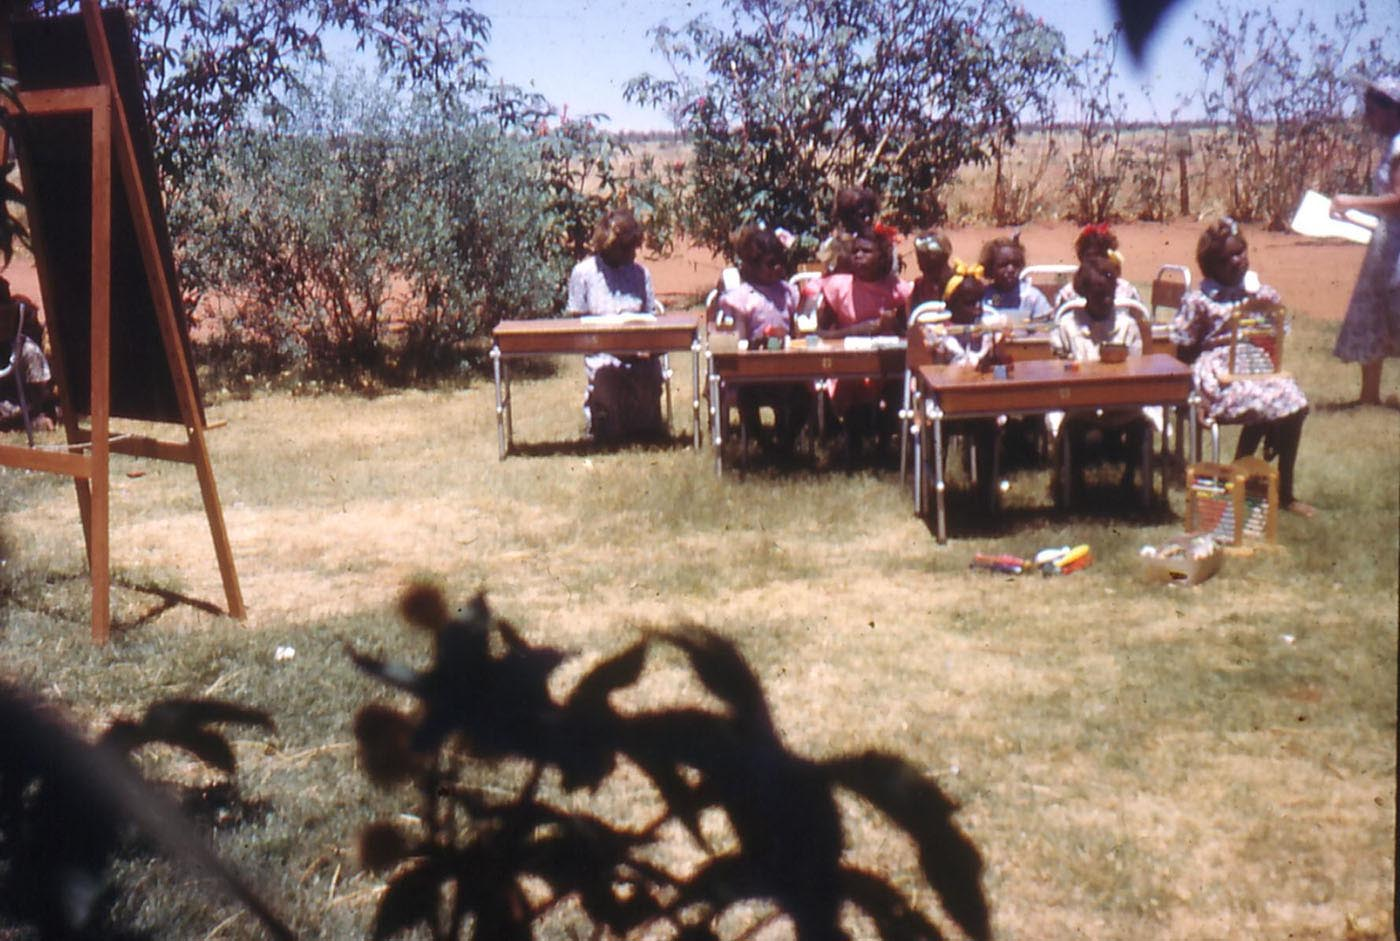 A group of children sitting at desks in an outdoor area.